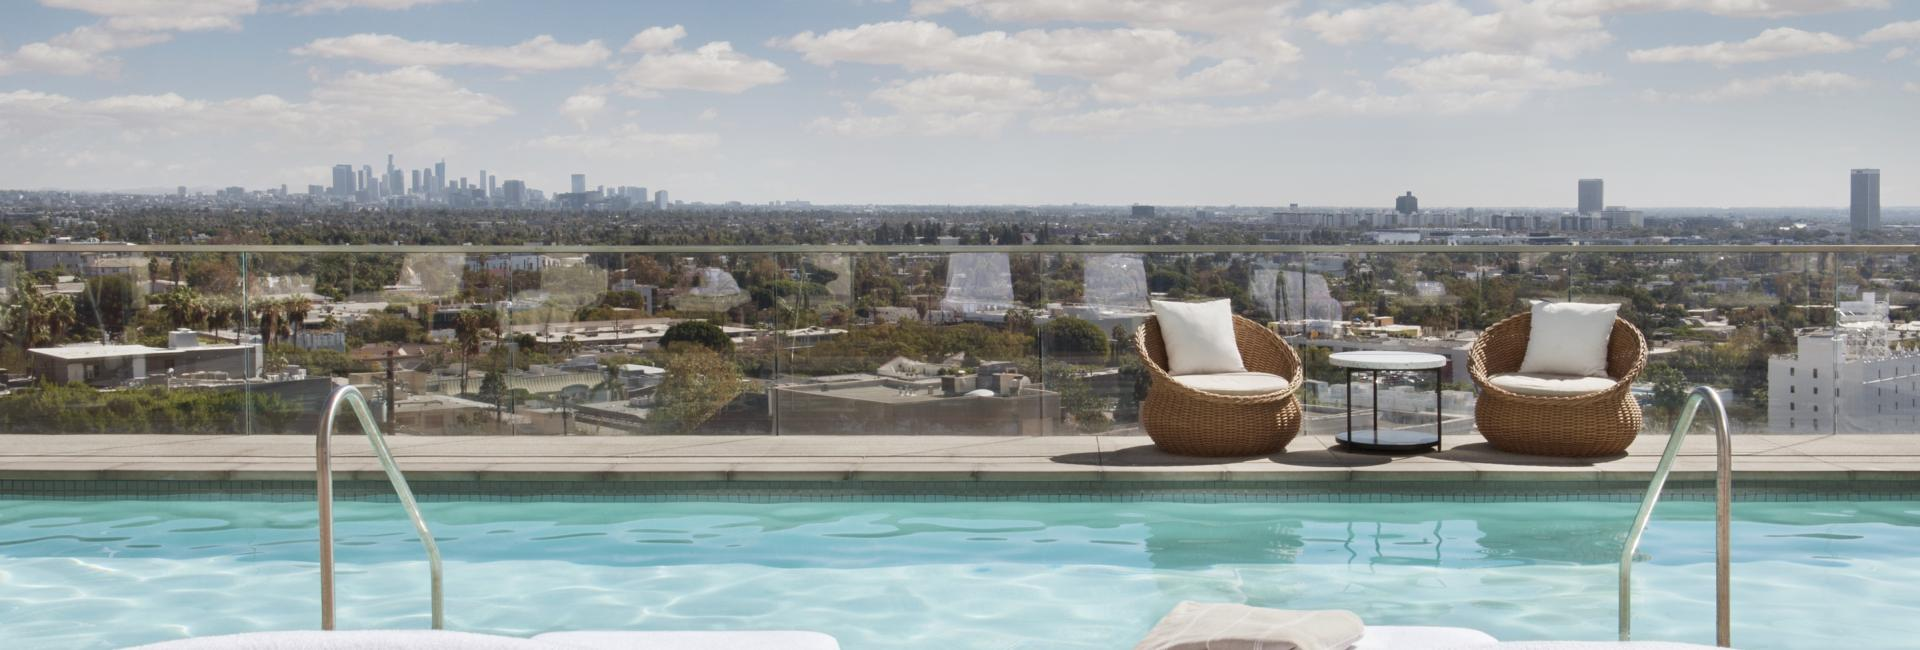 pool chairs overlooking west hollywood